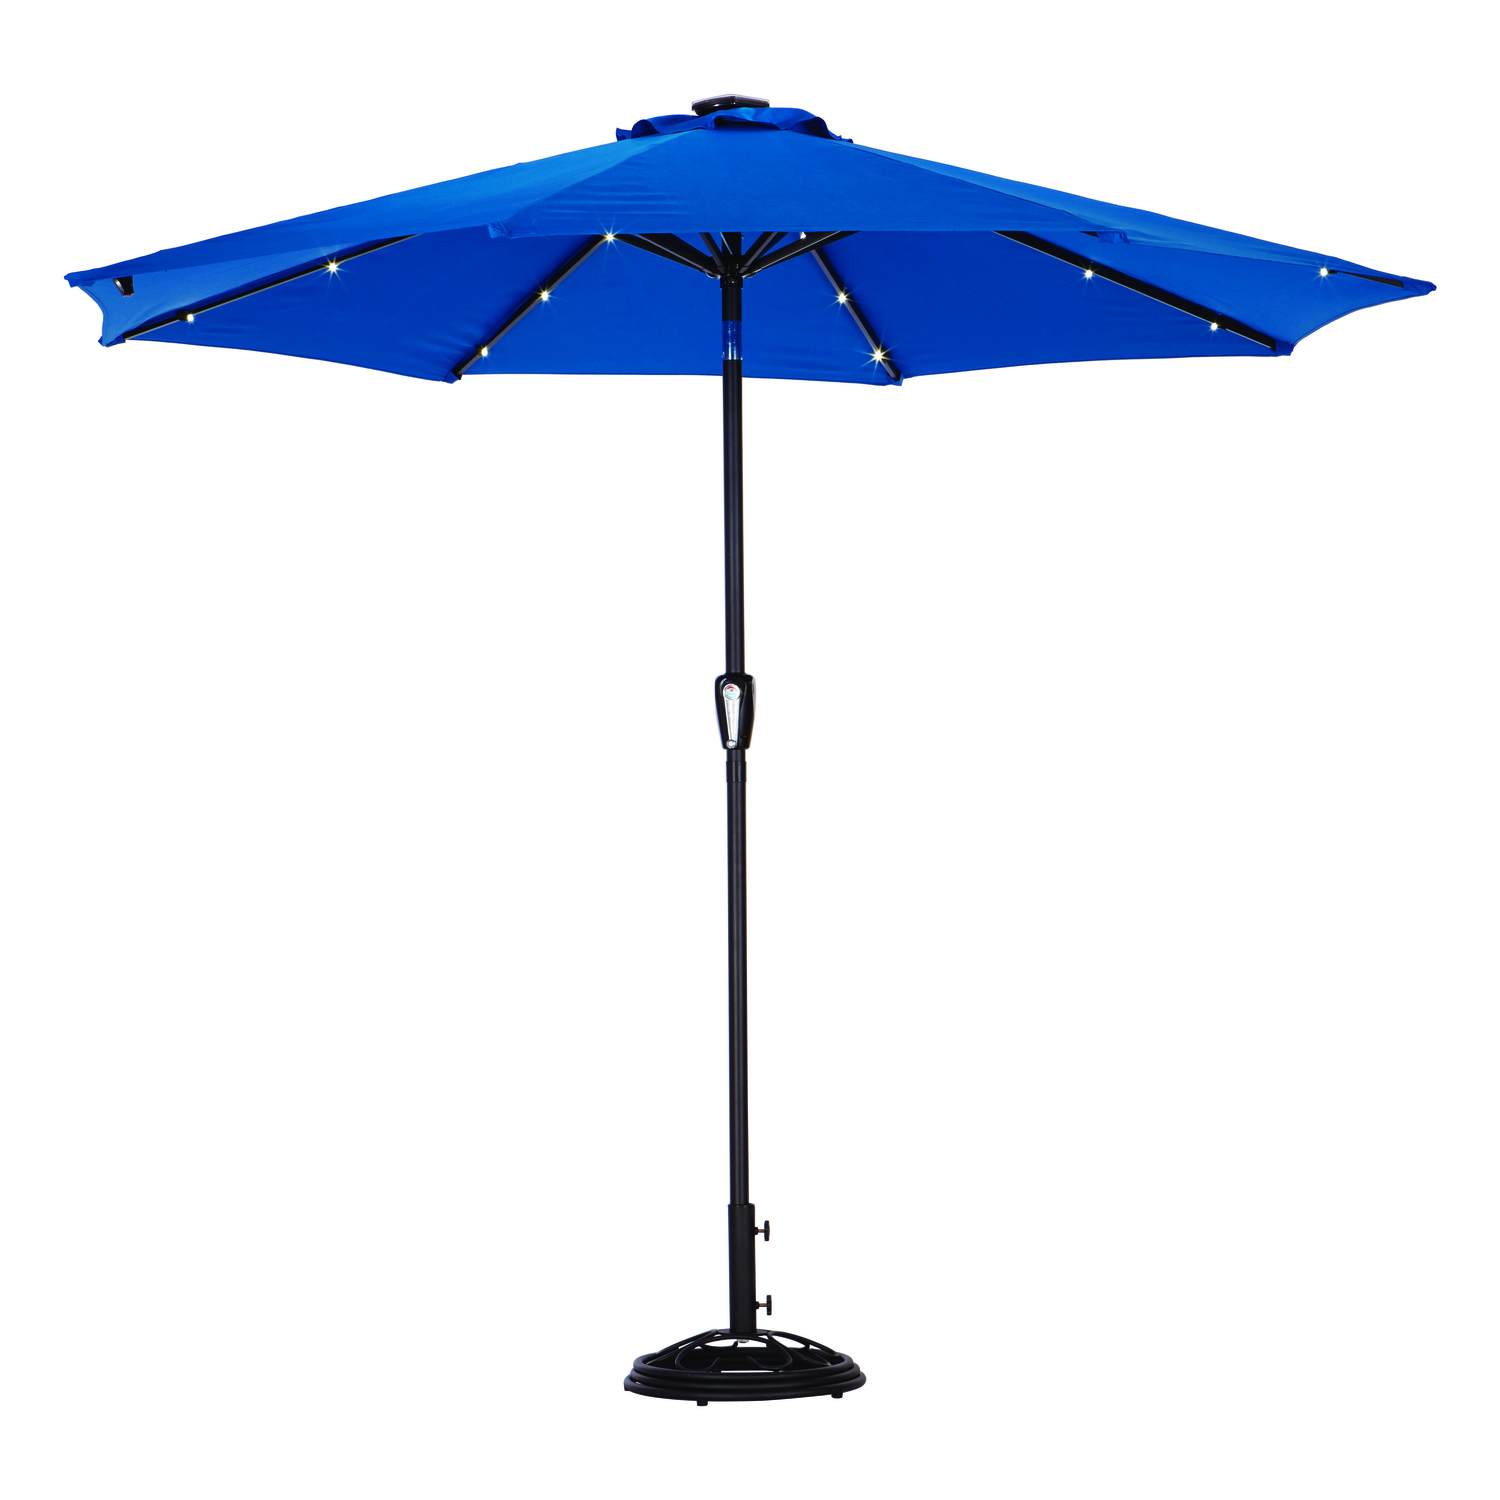 Tiltable Royal Blue Patio Umbrella - Living Accents MARKET 9 Ft. Tiltable Royal Blue Patio Umbrella - Ace